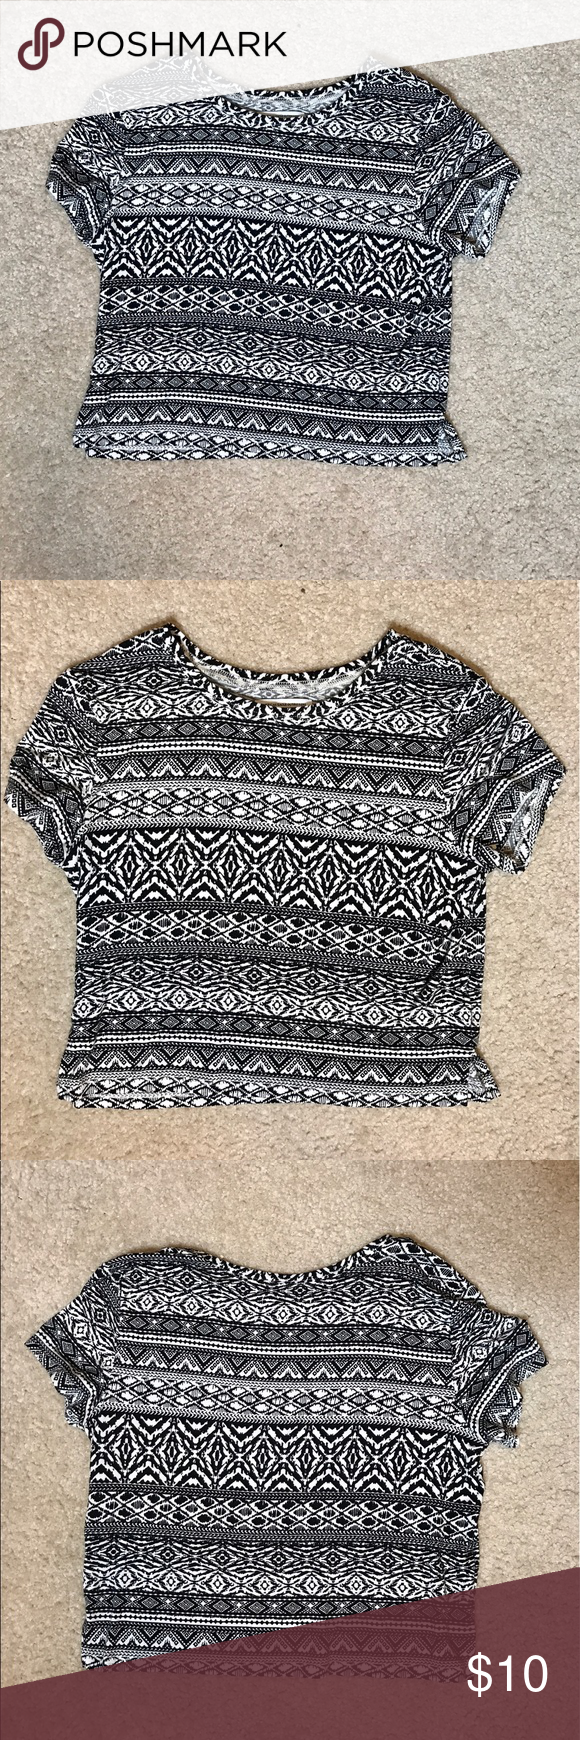 American Eagle Tribal Top Size Medium This too is